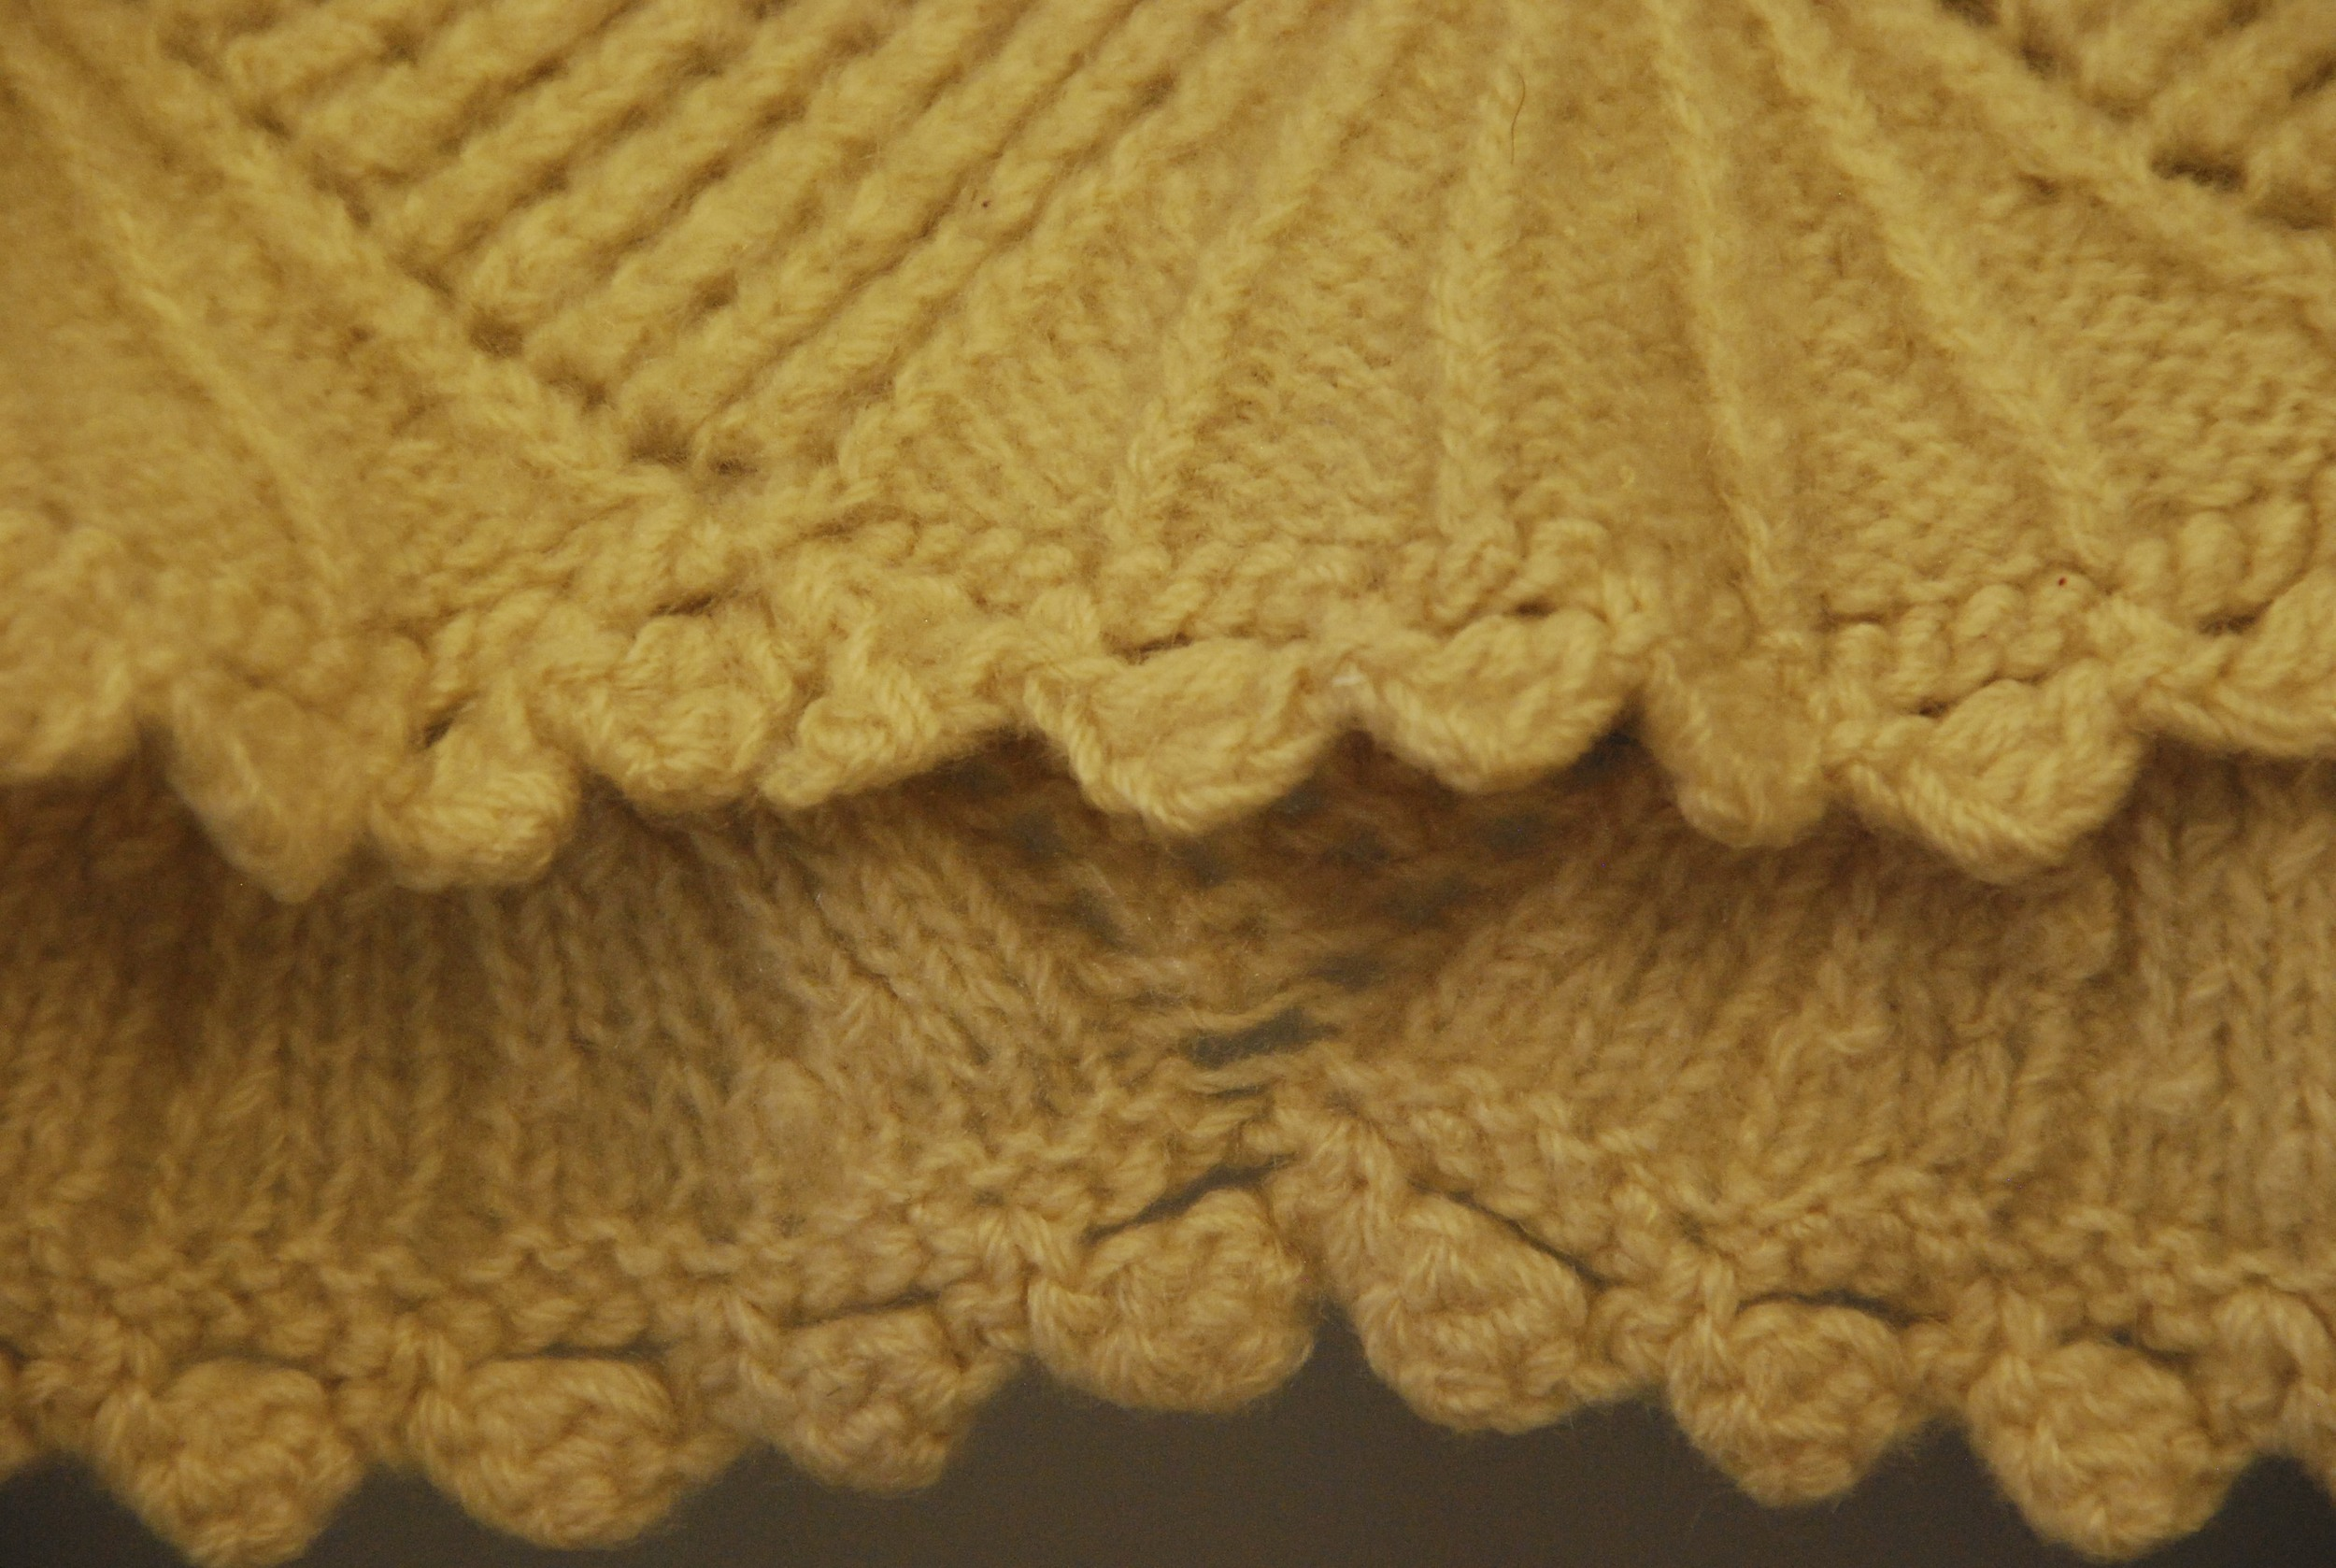 the edging of a lace knit petticoat